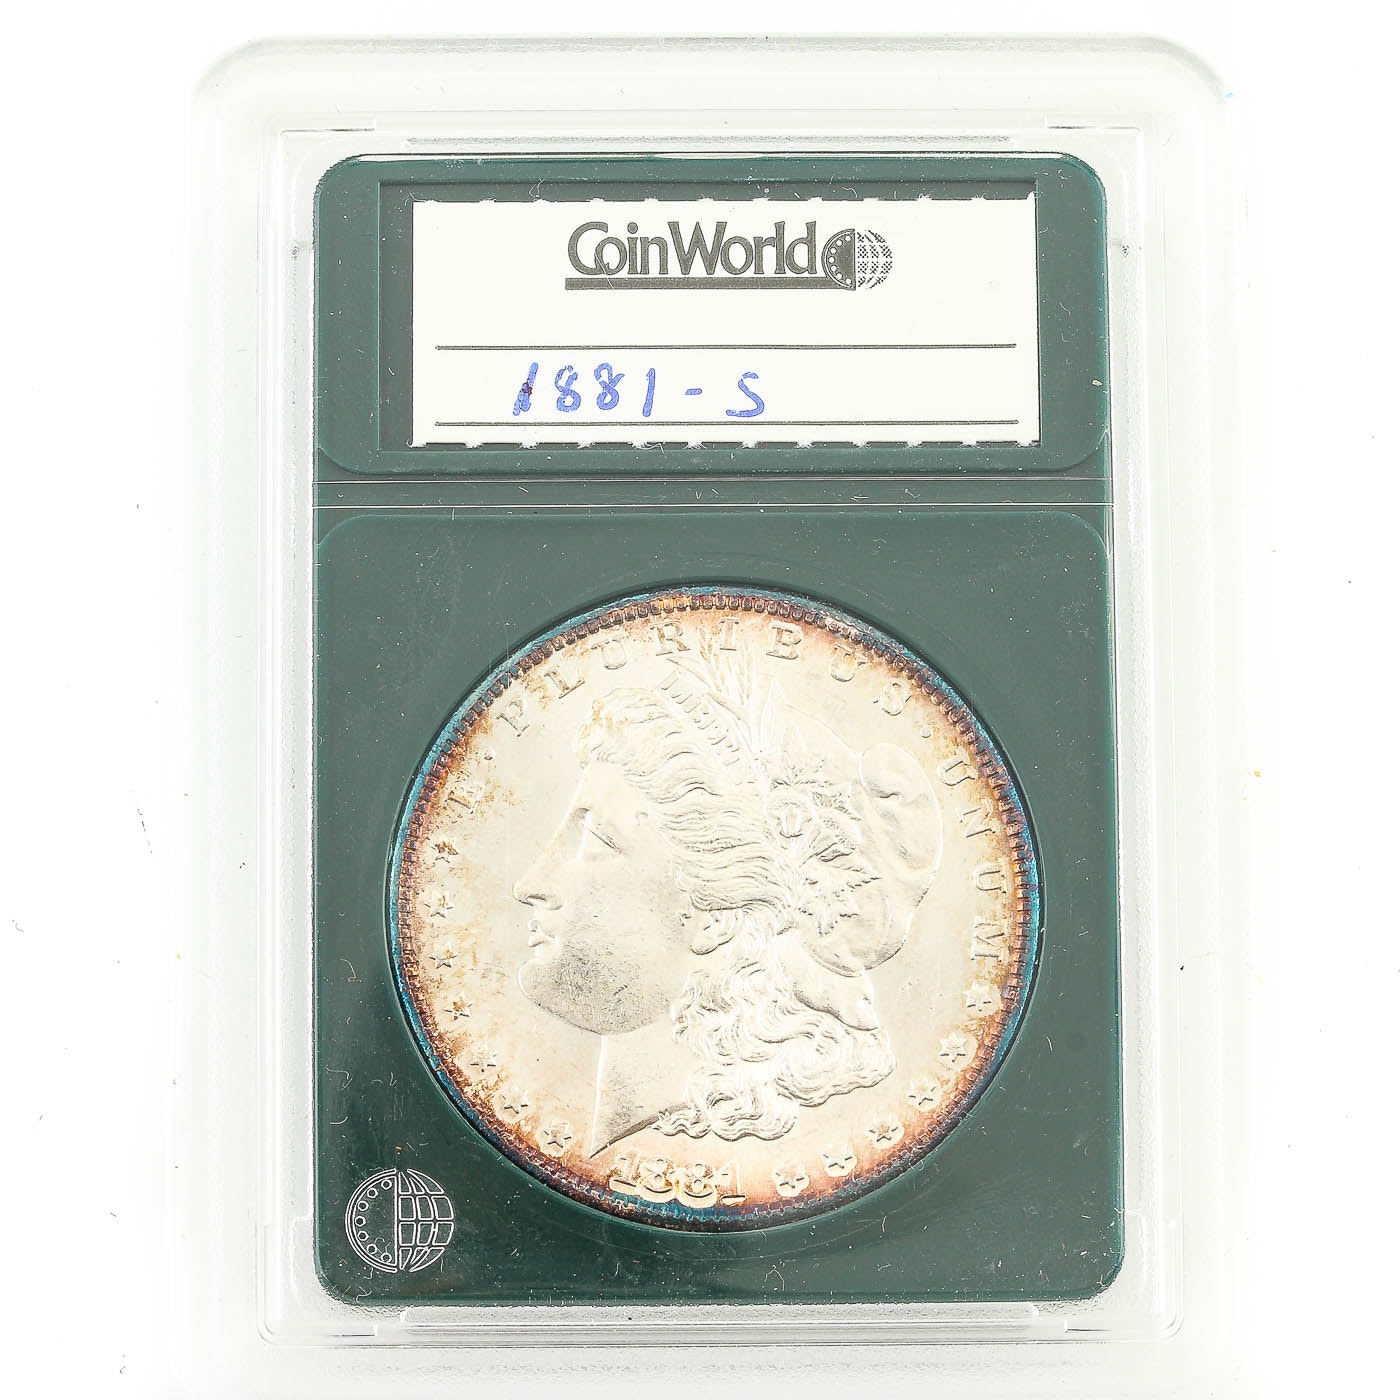 Encapsulated 1881-S Morgan Silver Dollar